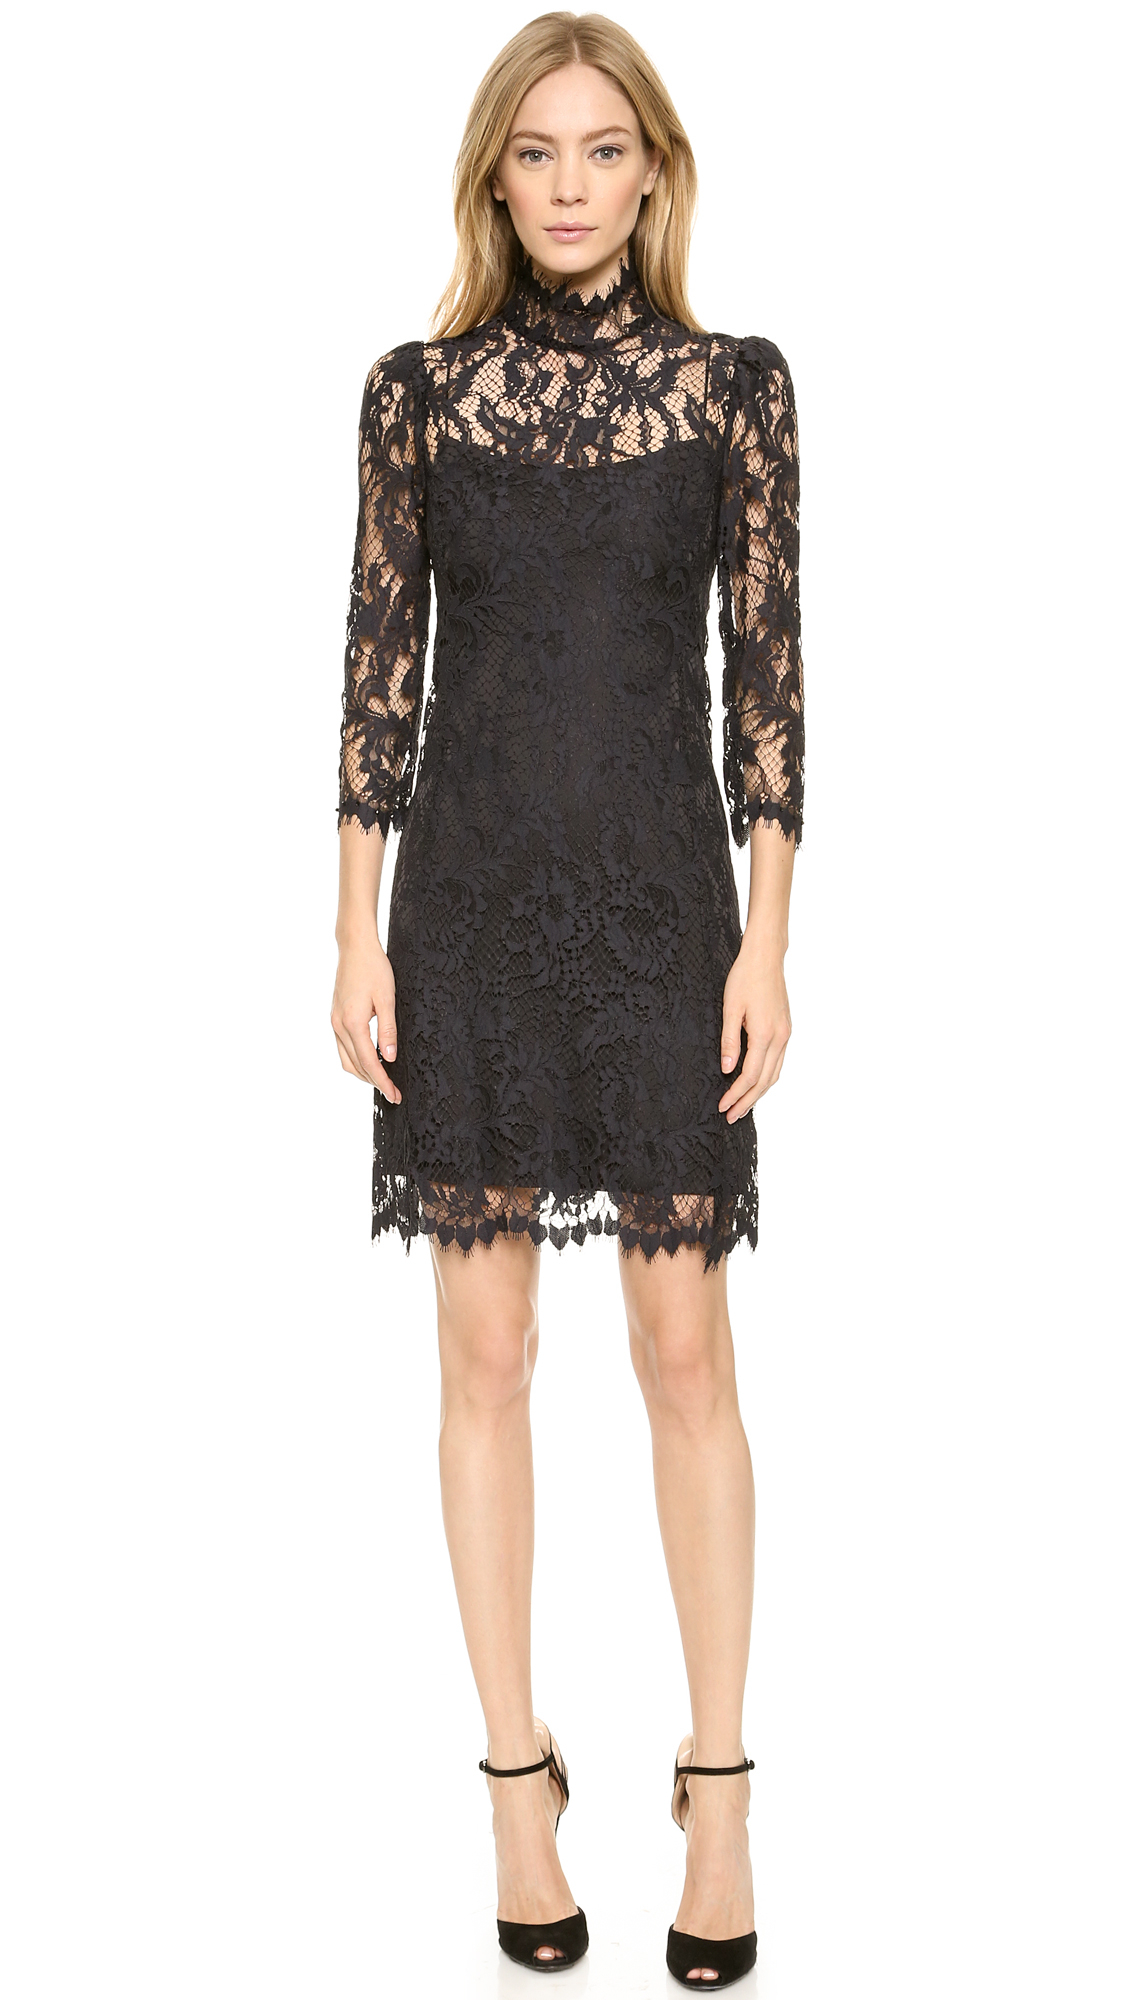 23d364ef3f Gallery. Previously sold at  Shopbop · Women s Black Cocktail Dresses ...